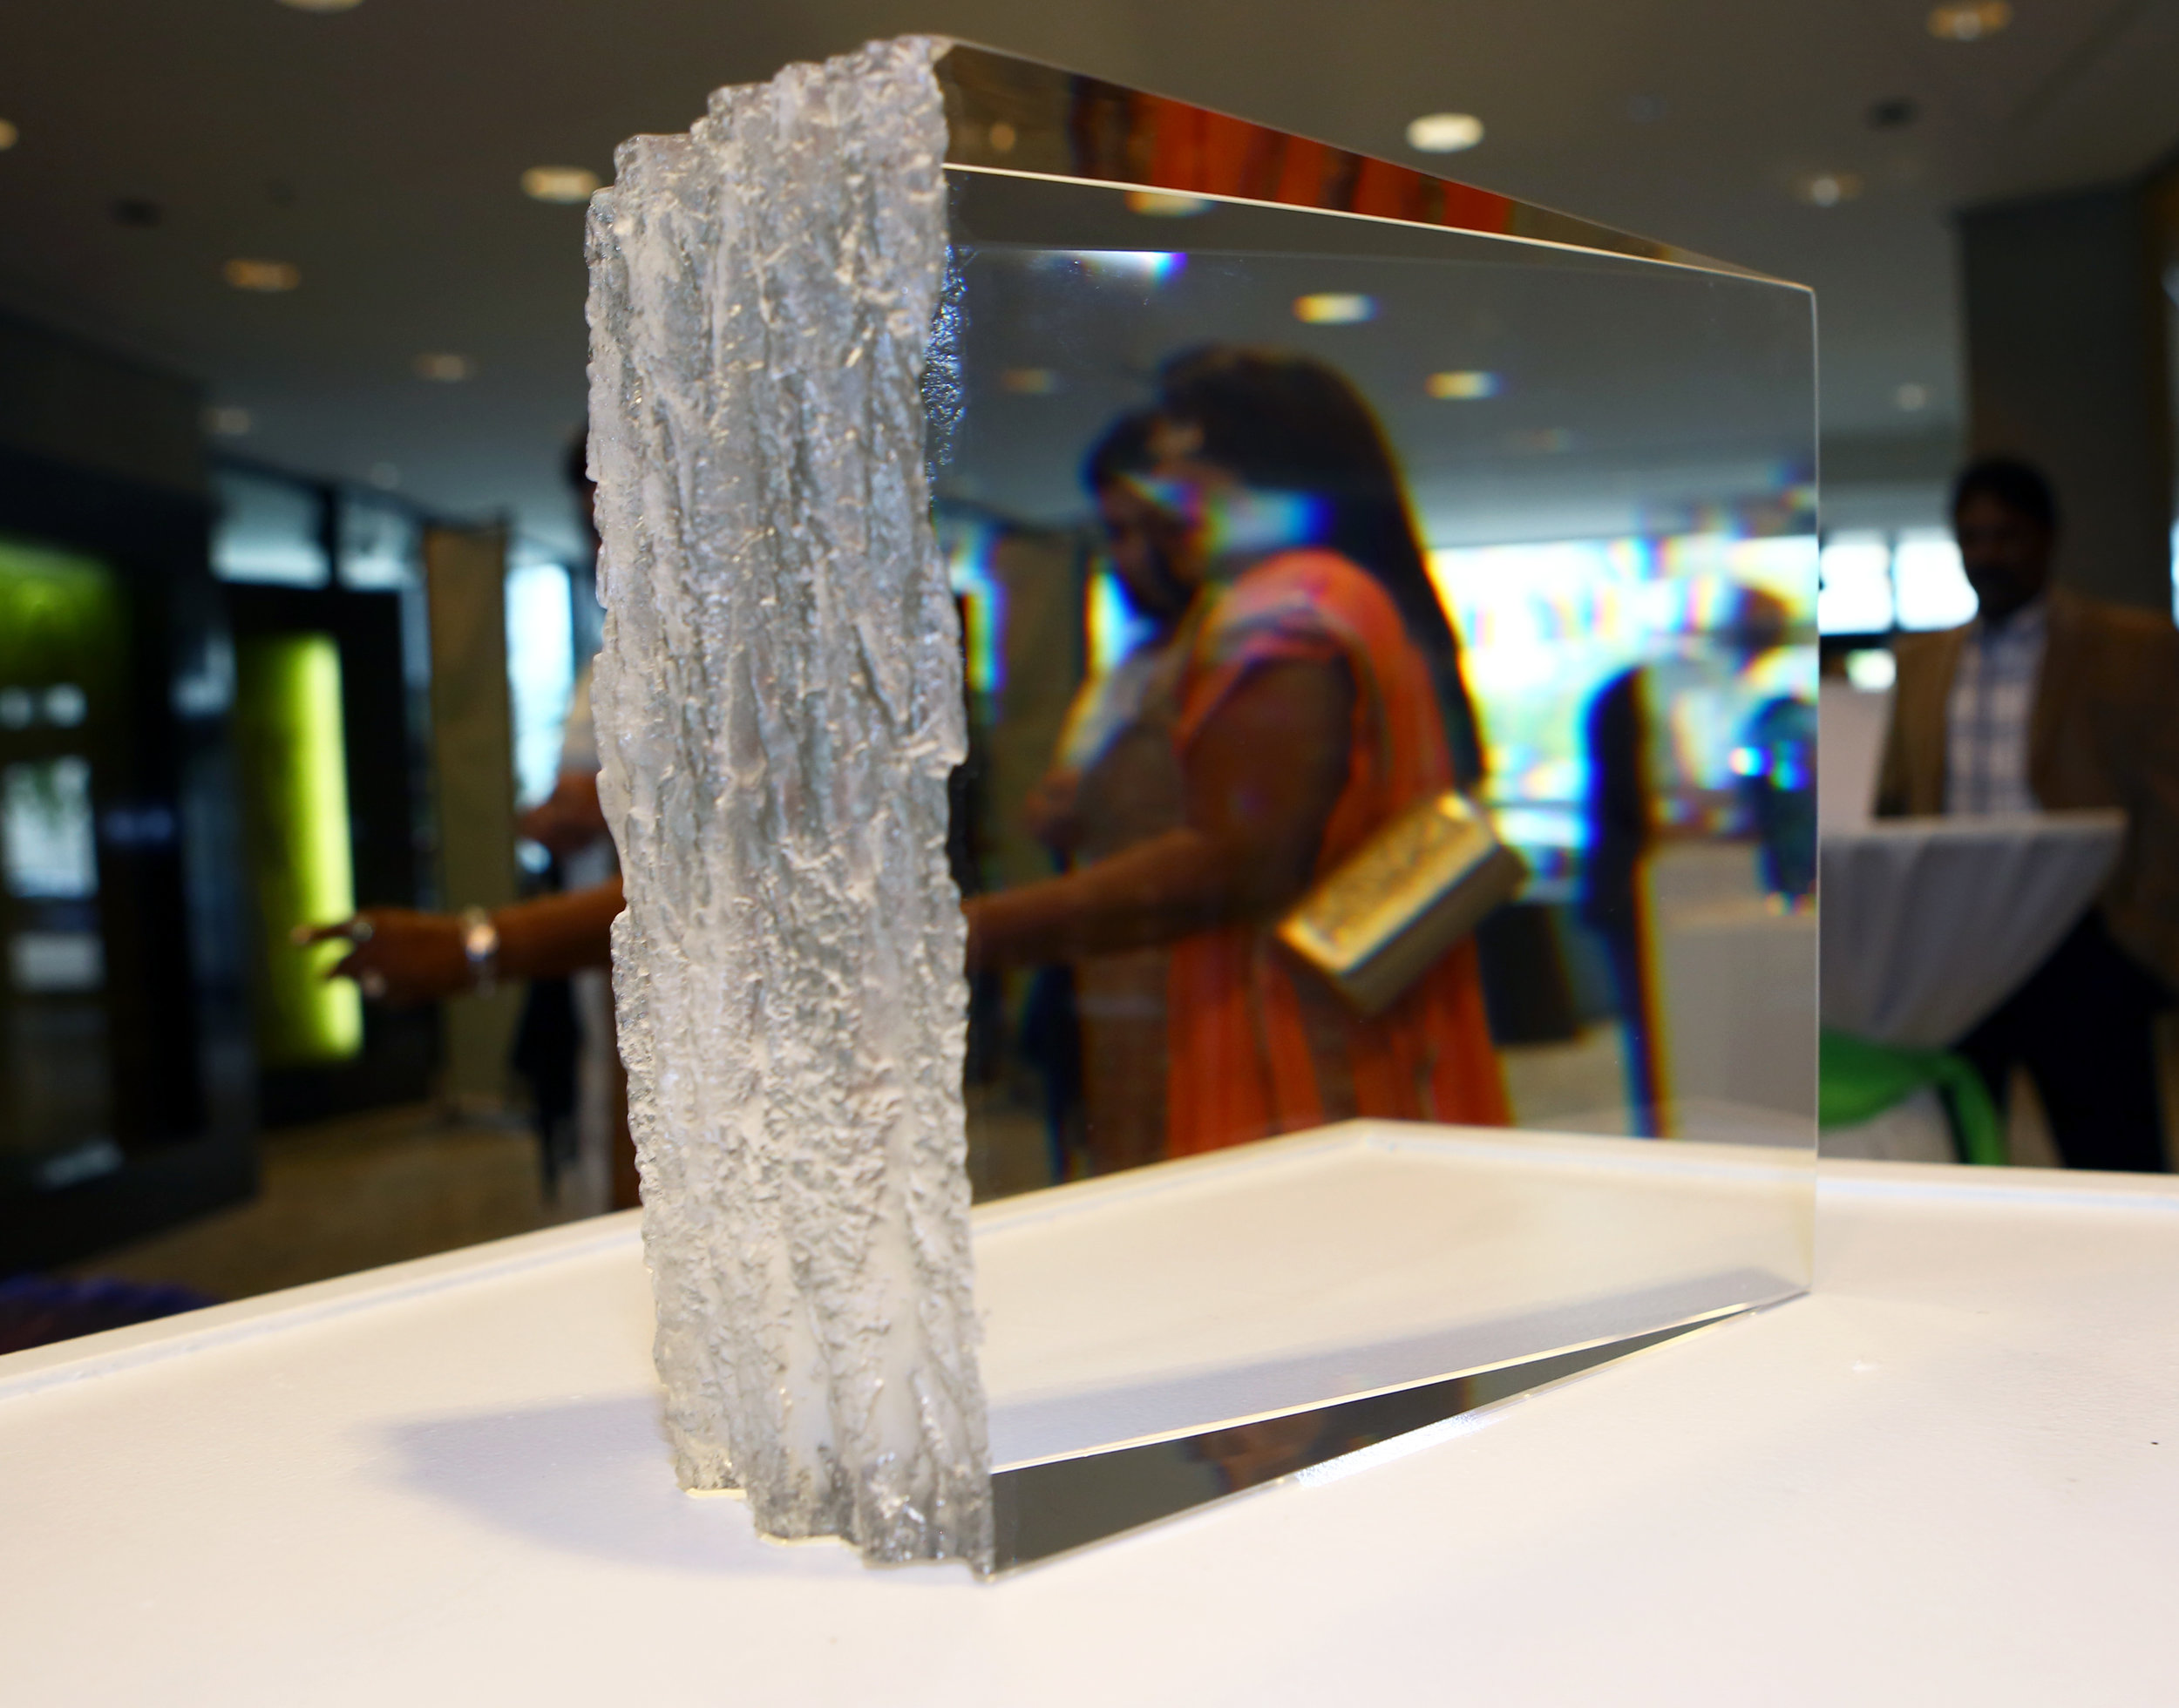 """Attendees walk past the """"White Pine"""" prism piece by Joel O'Dorsio during the Hot Shots! fundraiser benefitting The Arts Commission at the Edison Building in downtown Toledo on Saturday, October 1, 2016."""